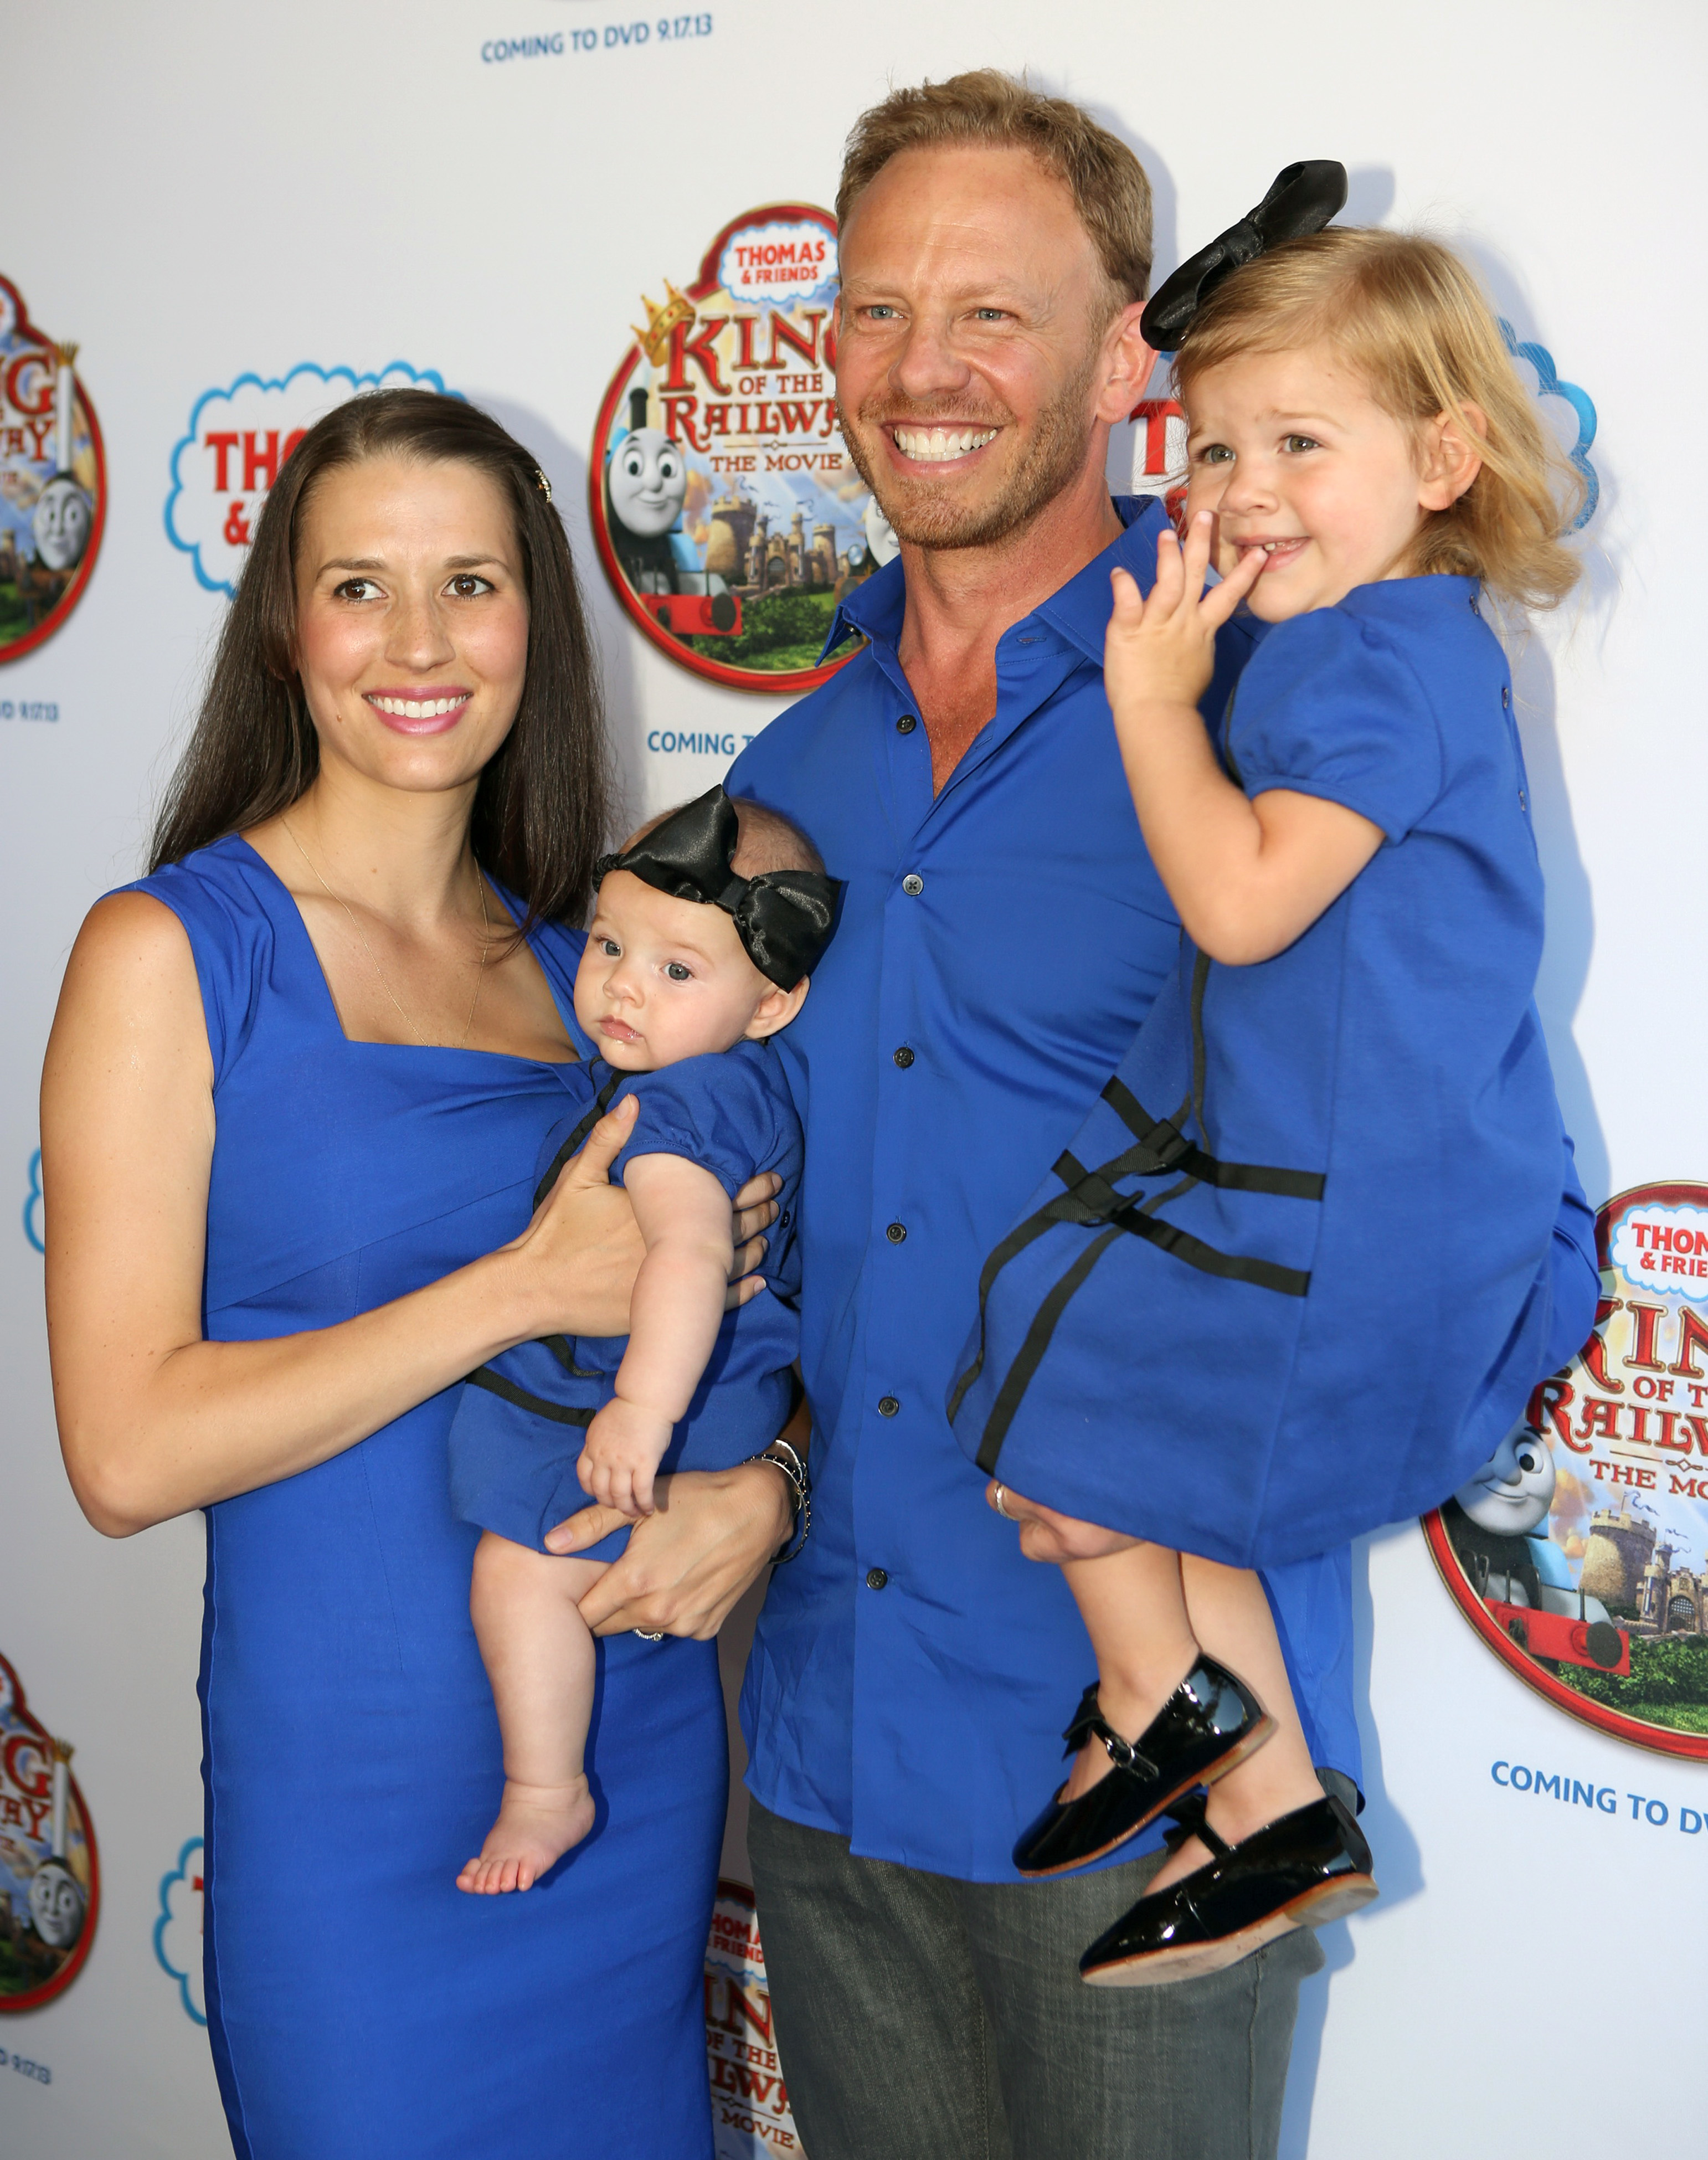 Ian Ziering on how his daughters, Mia and Penna, are getting feisty: